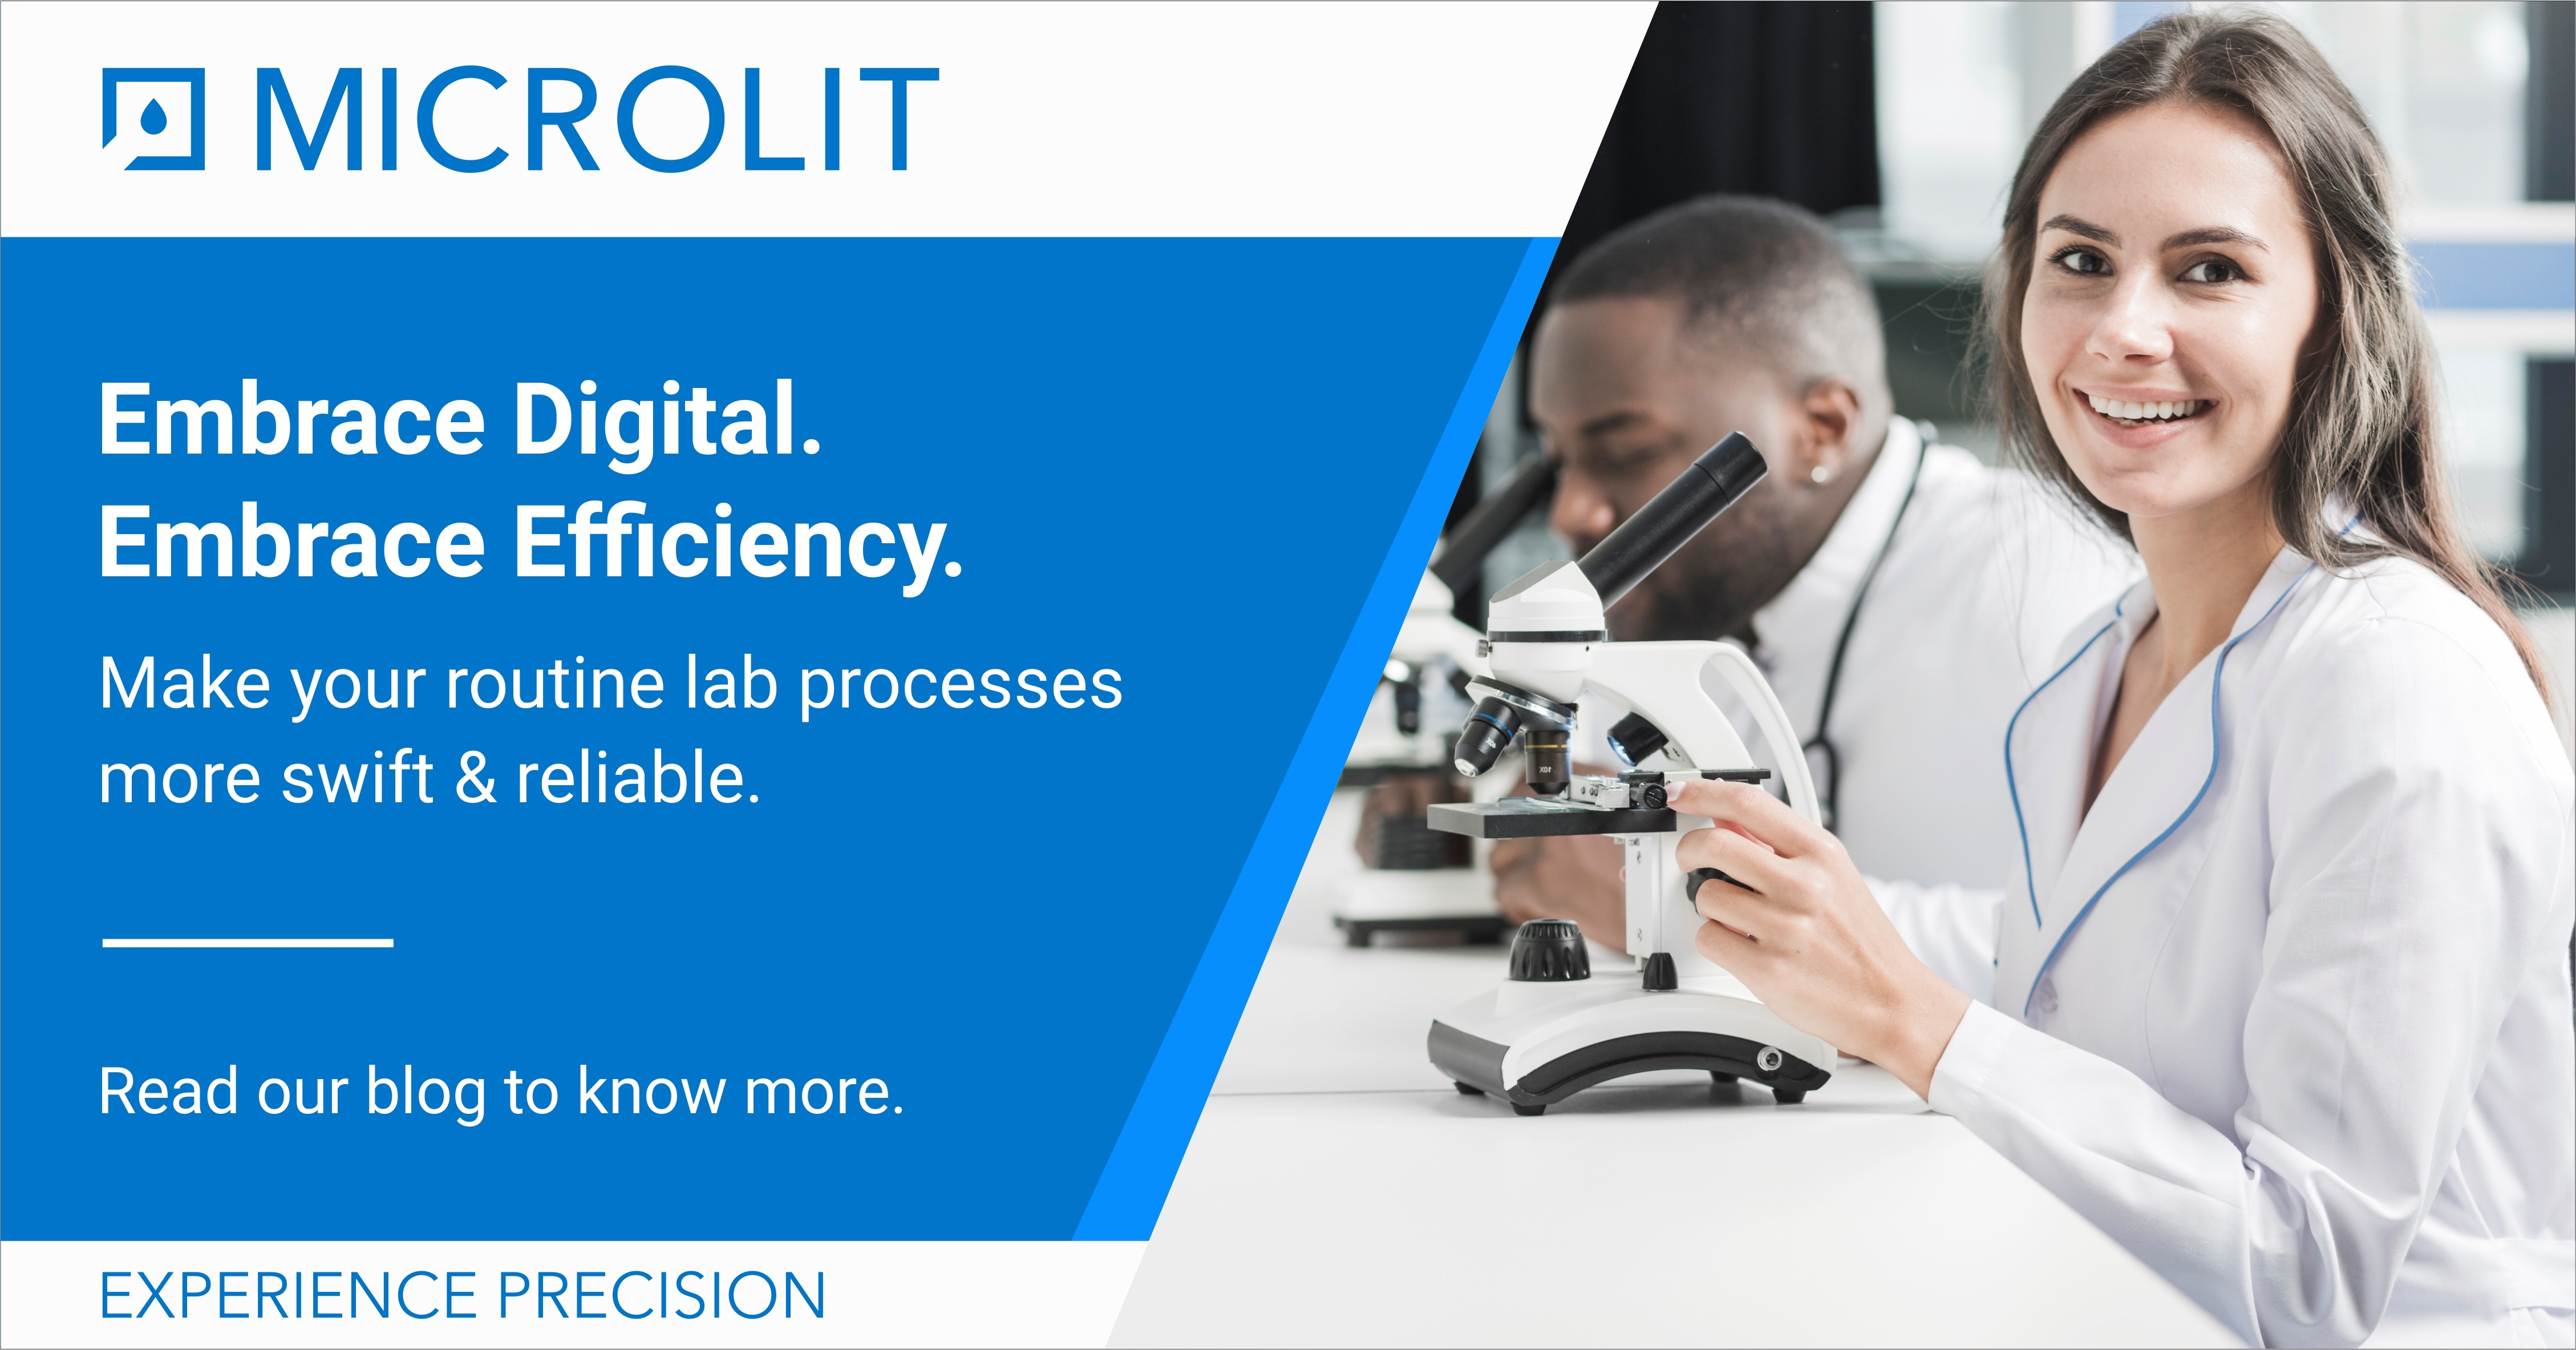 Go Digital to Accelerate Your Efficiency